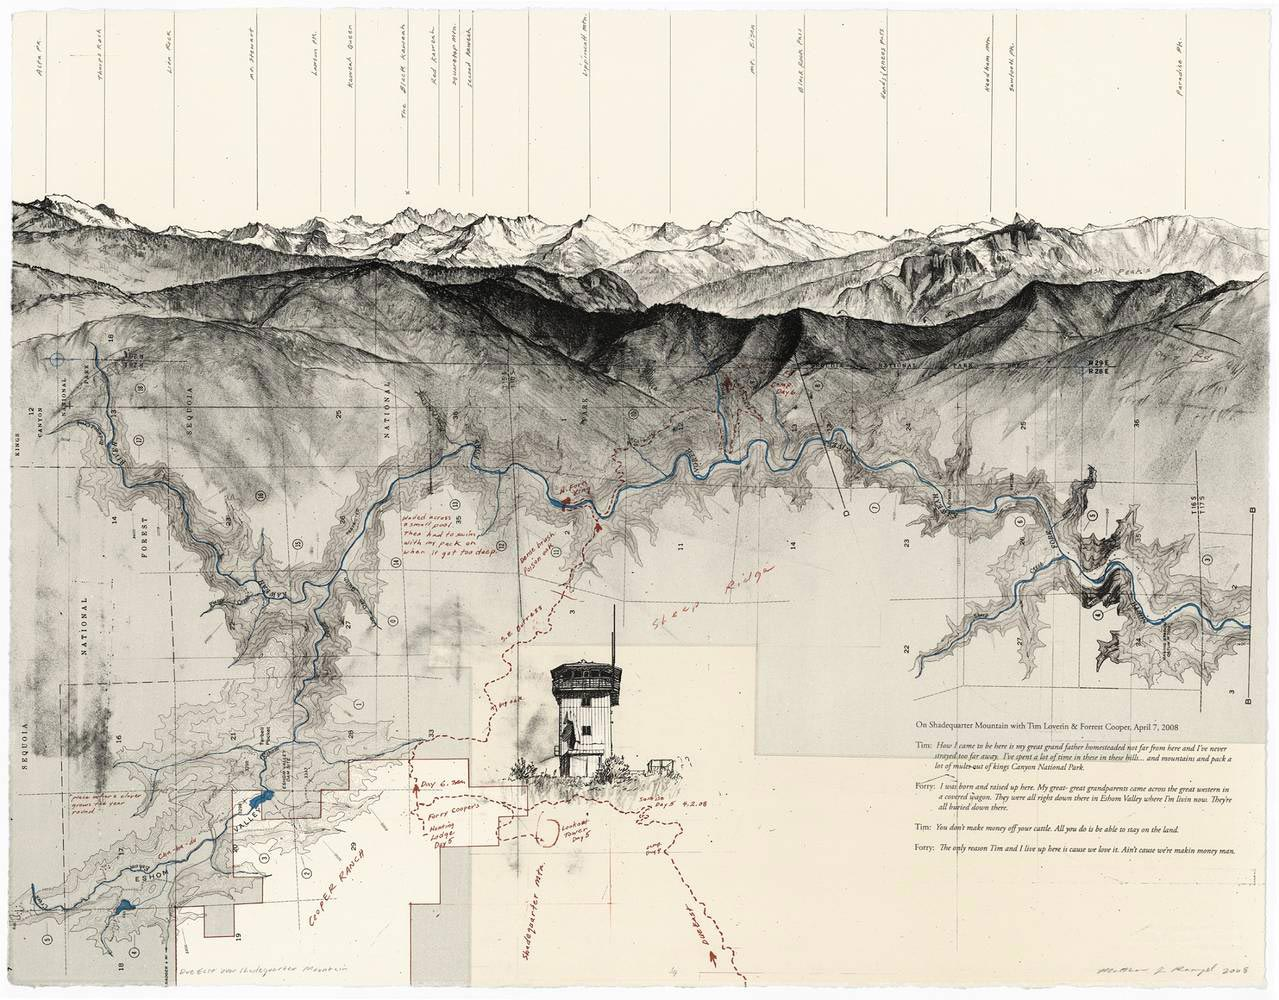 Mixing cartography and landscape drawing